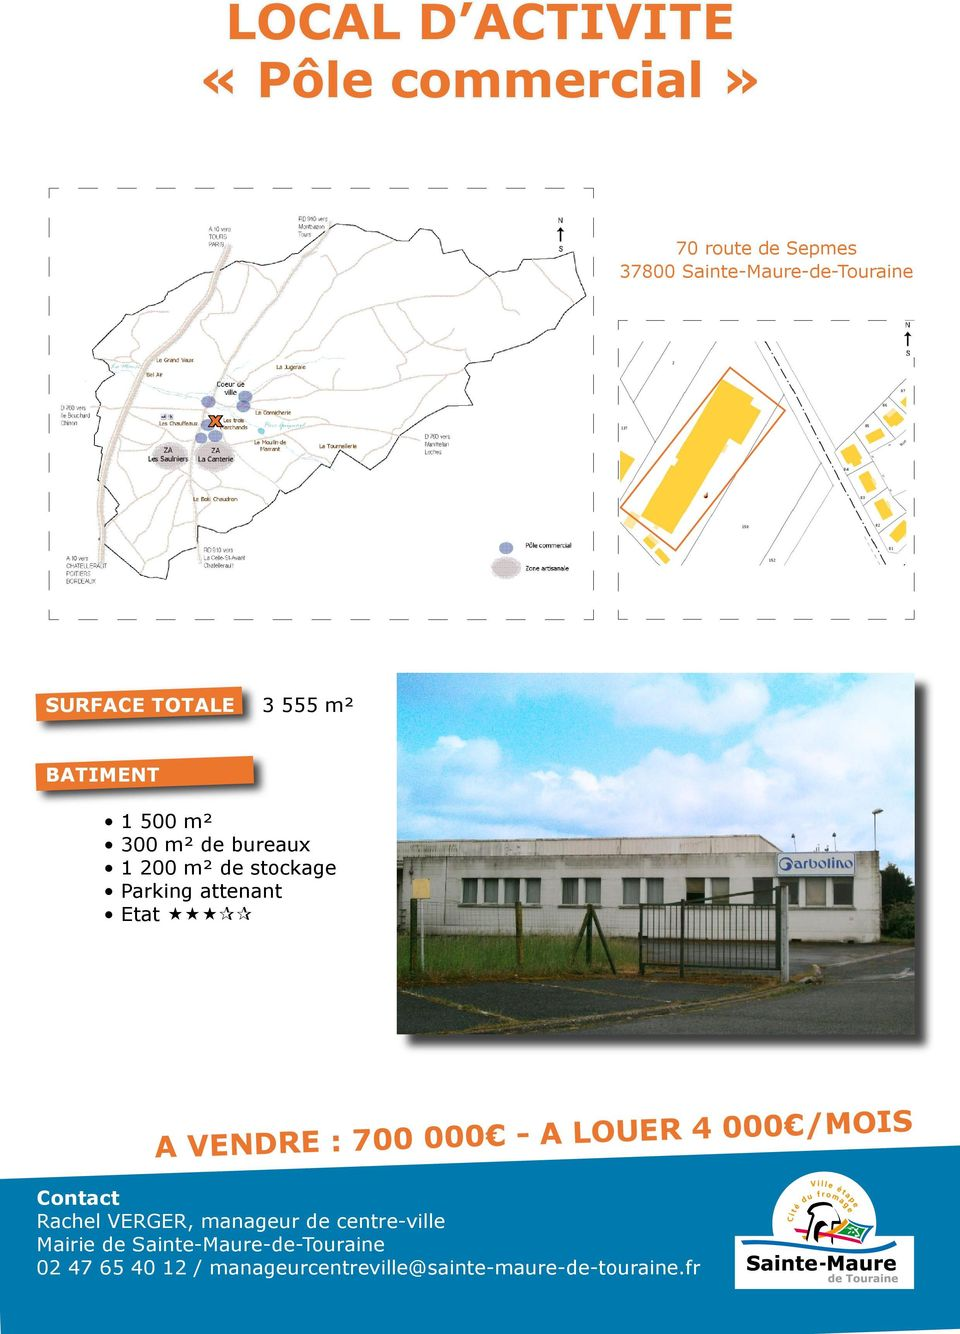 300 m² de bureau 1 200 m² de stockage Parking